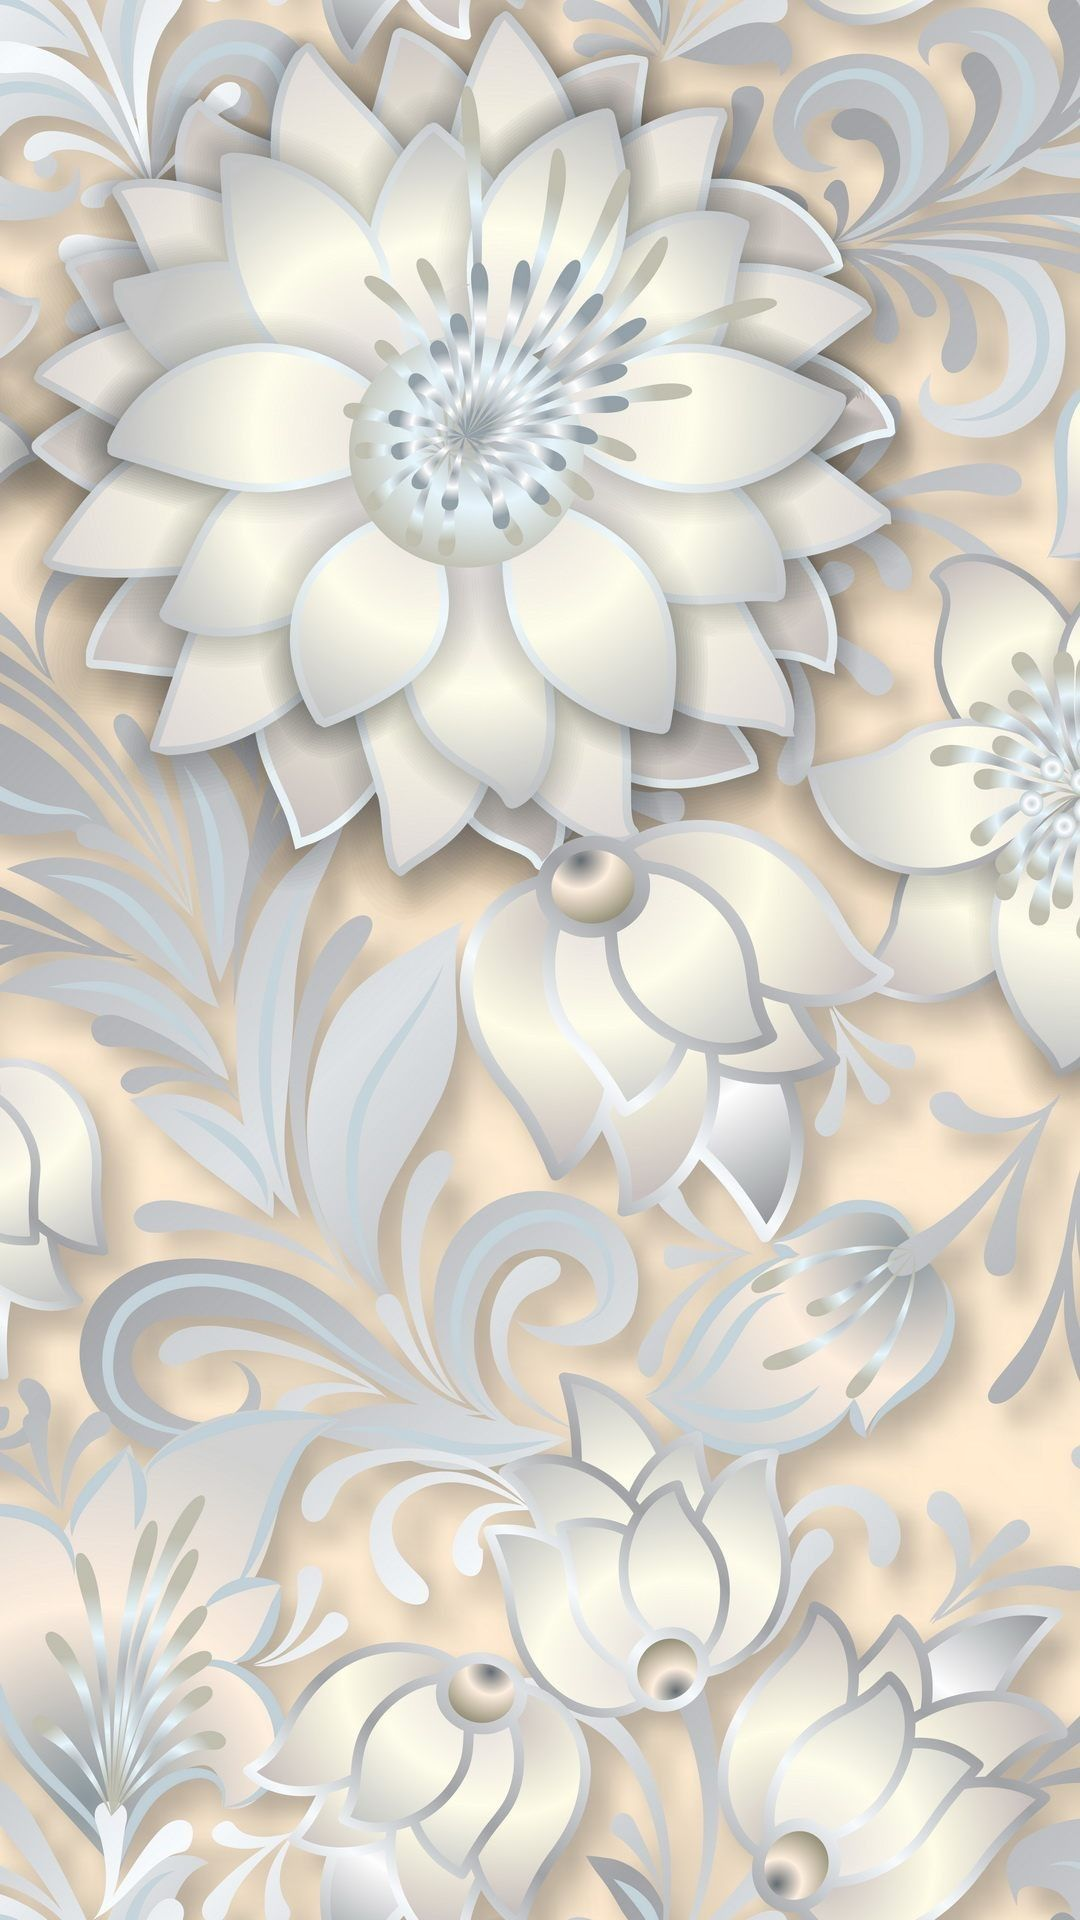 Silver Plated Flowers Wallpaper Wallpaper Sazum Iphone Wallpaper